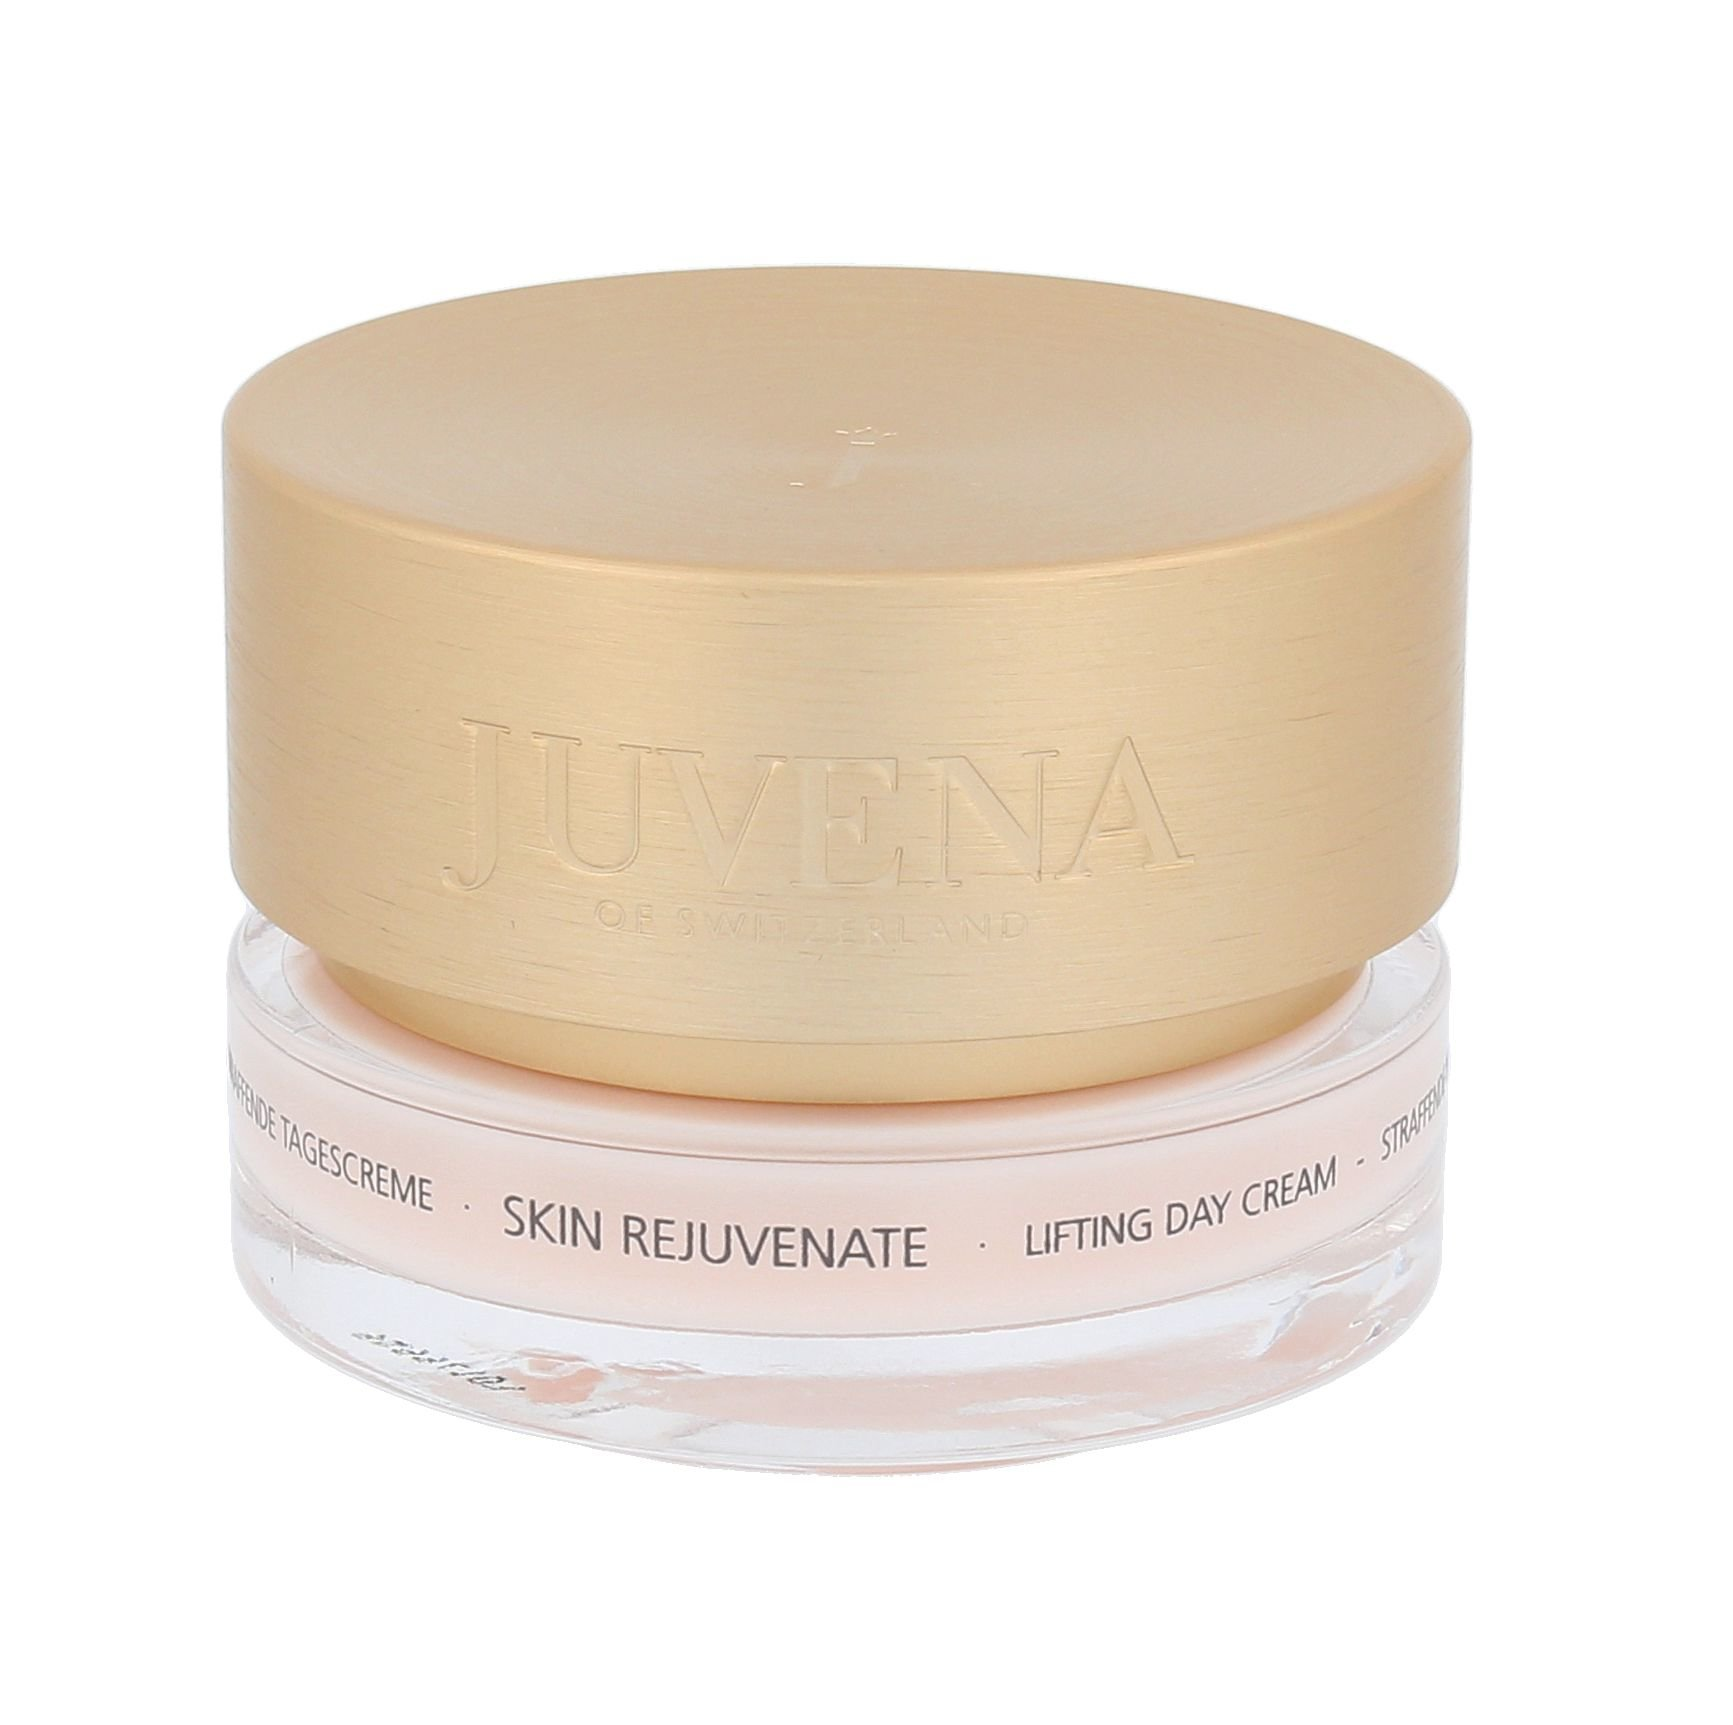 Juvena Skin Rejuvenate Cosmetic 50ml